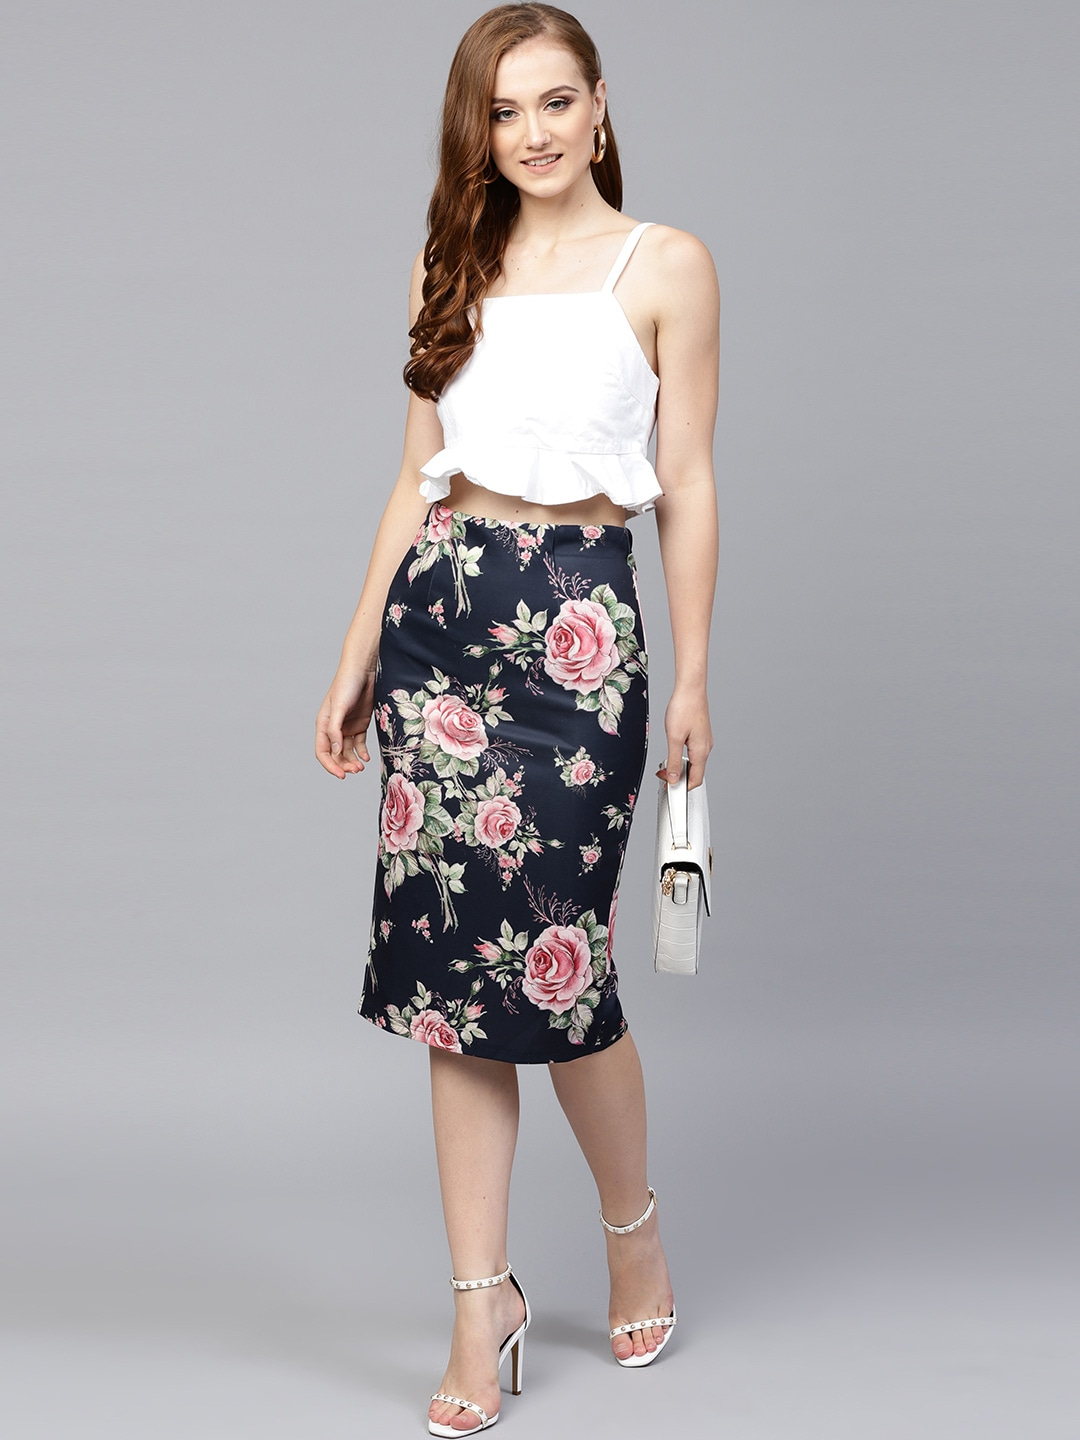 Girlistan - Finding the Right Floral Skirt For Every Season